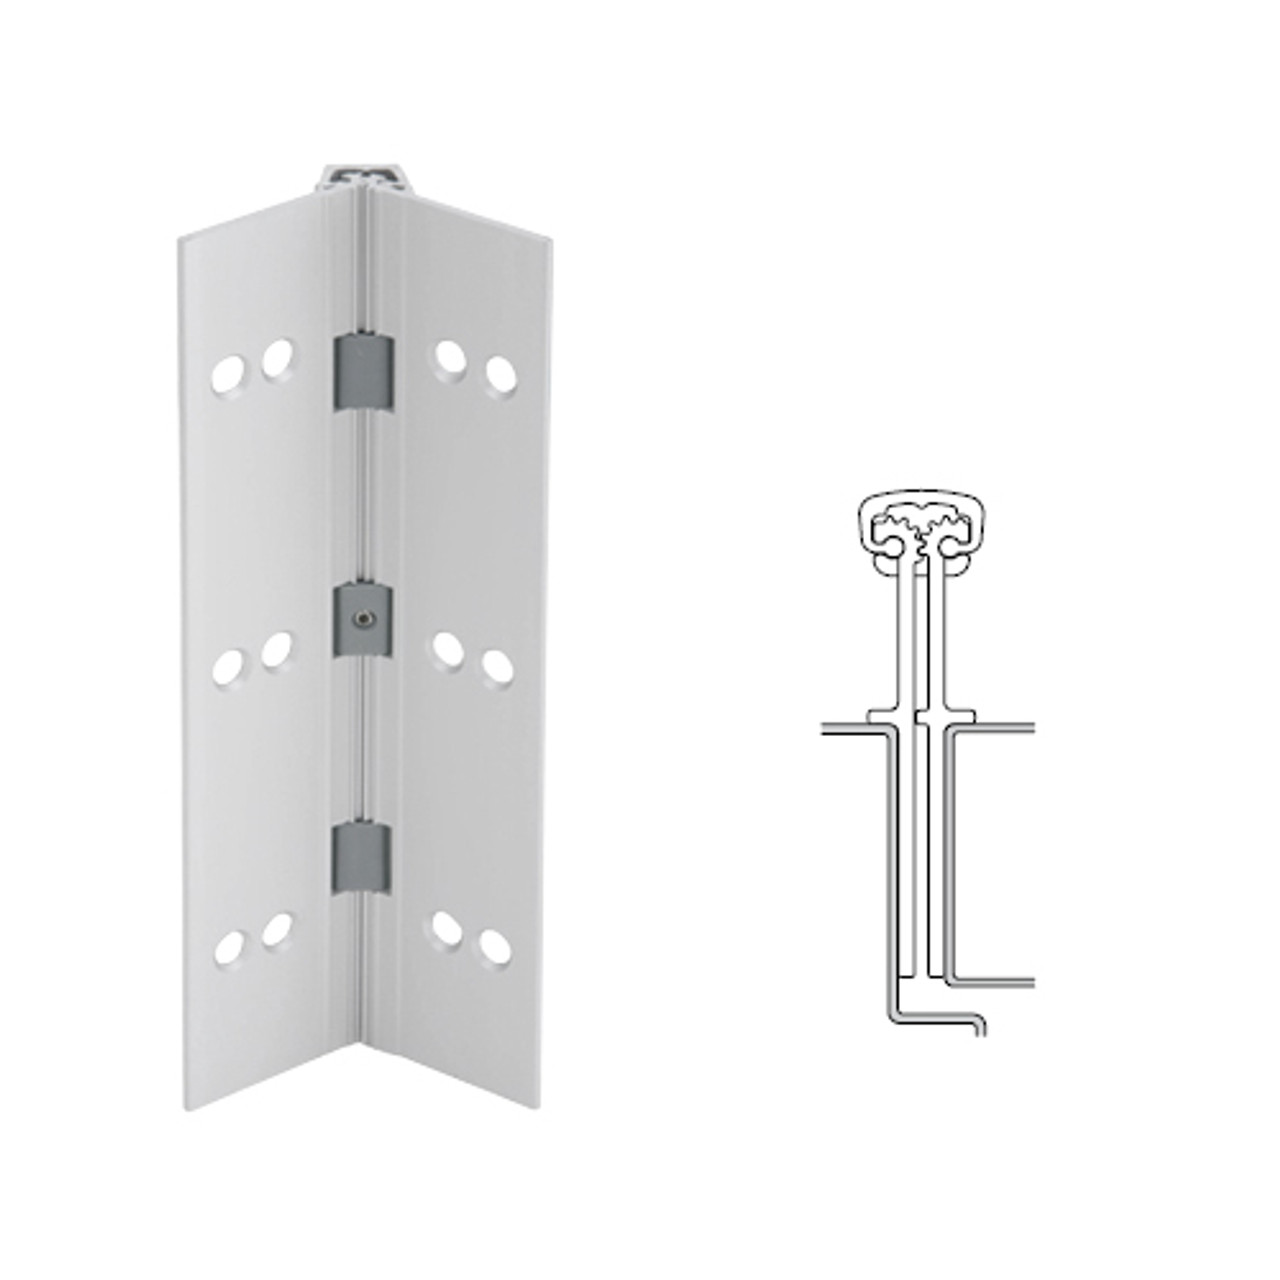 040XY-US28-83-SECWDWD IVES Full Mortise Continuous Geared Hinges with Security Screws - Hex Pin Drive in Satin Aluminum